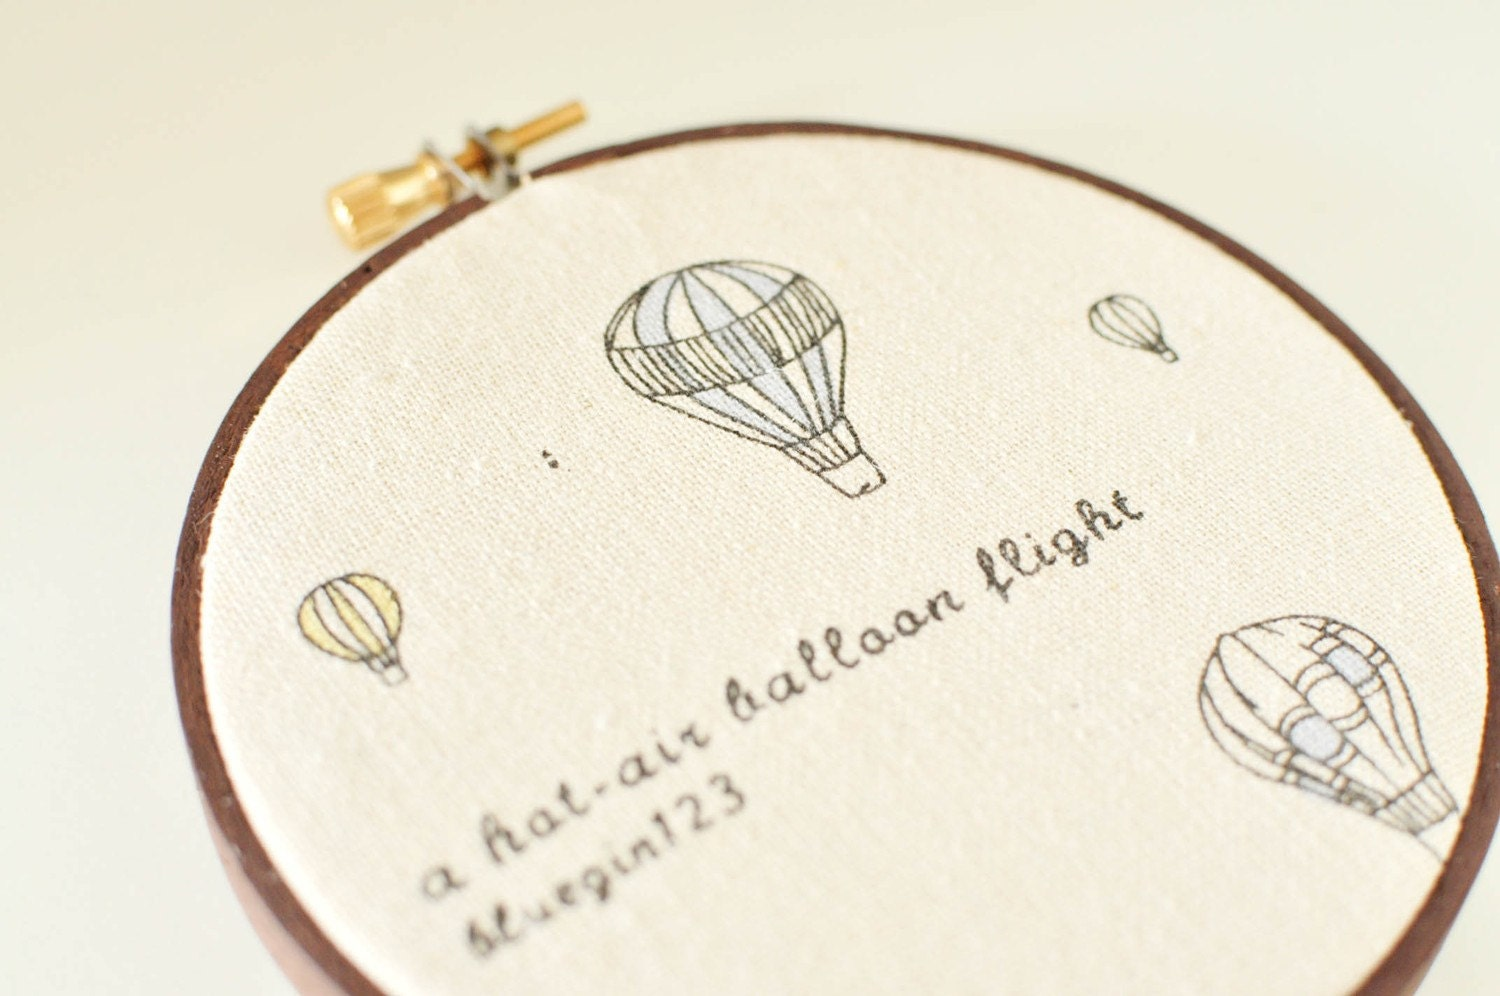 Hot Air Balloon Ride - Embroidery Home Decor